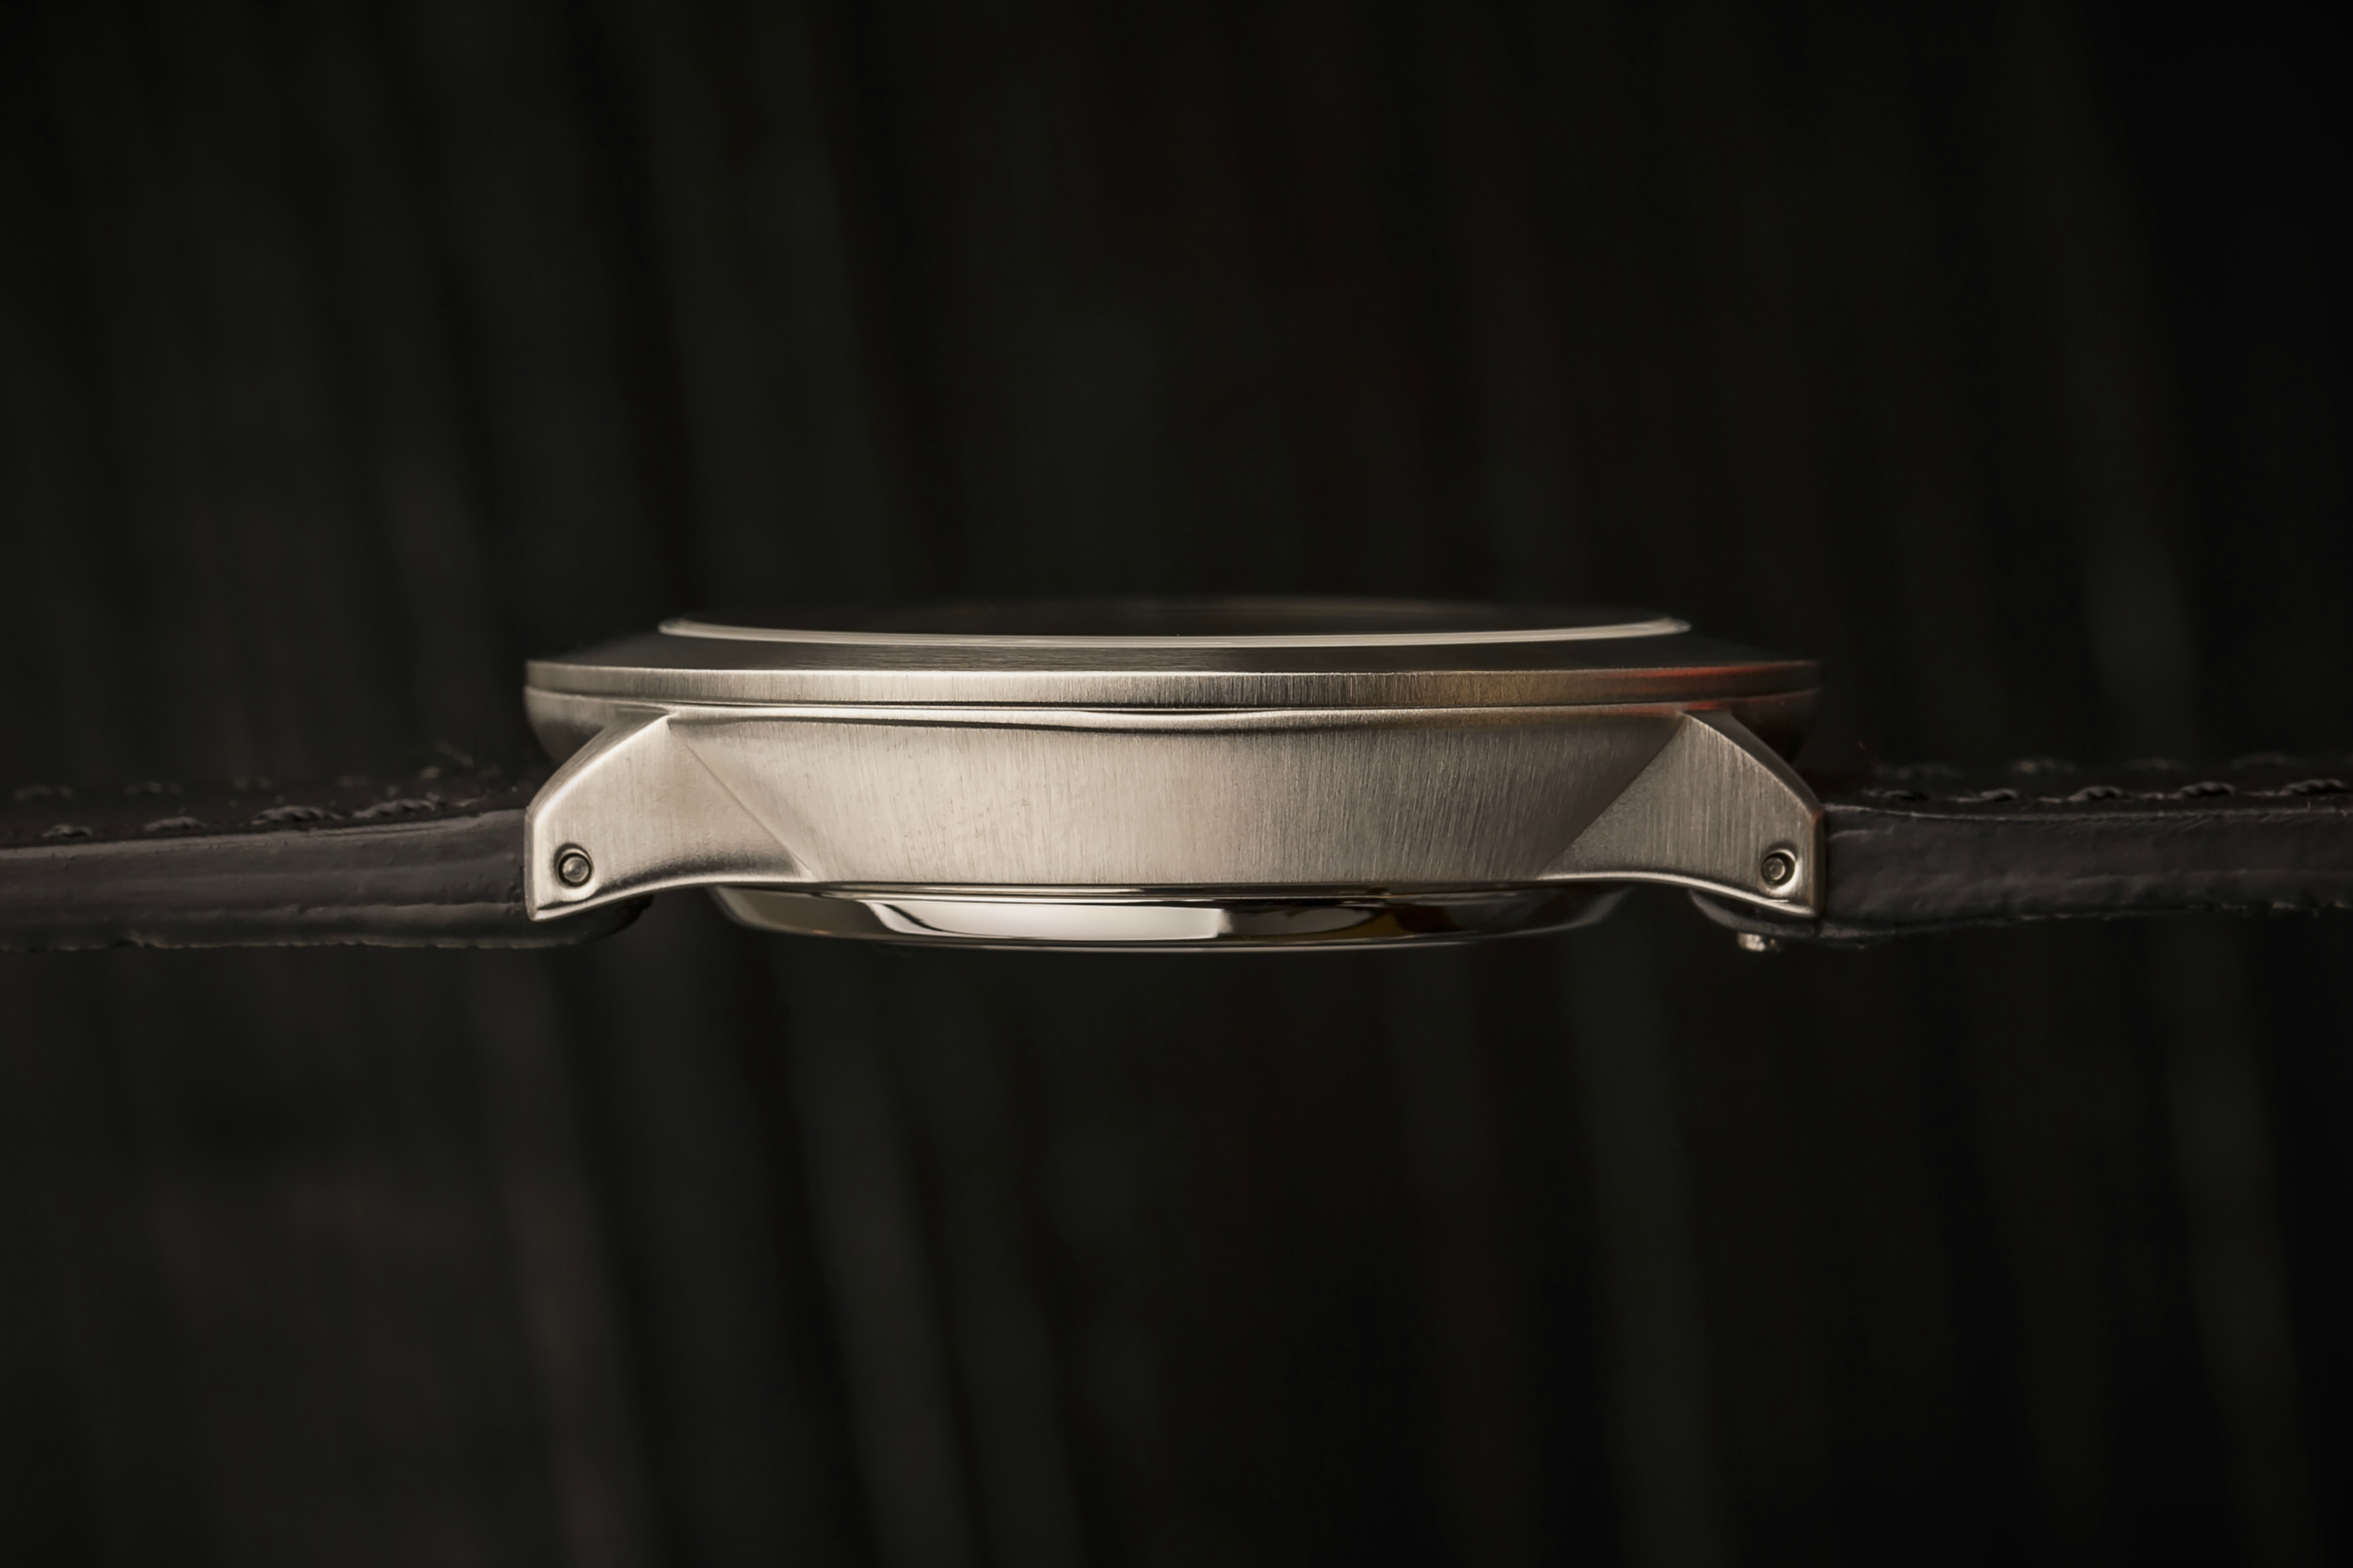 Case - The 316L stainless steel case is beautifully proportioned at 38mm wide (excluding the crown) and 41mm lug-to-lug to look at home on almost any wrist. The non-circular case is complimented by the crown guards and the bowl-shaped profile reduces the caseback surface area for a more comfortable wearing experience.